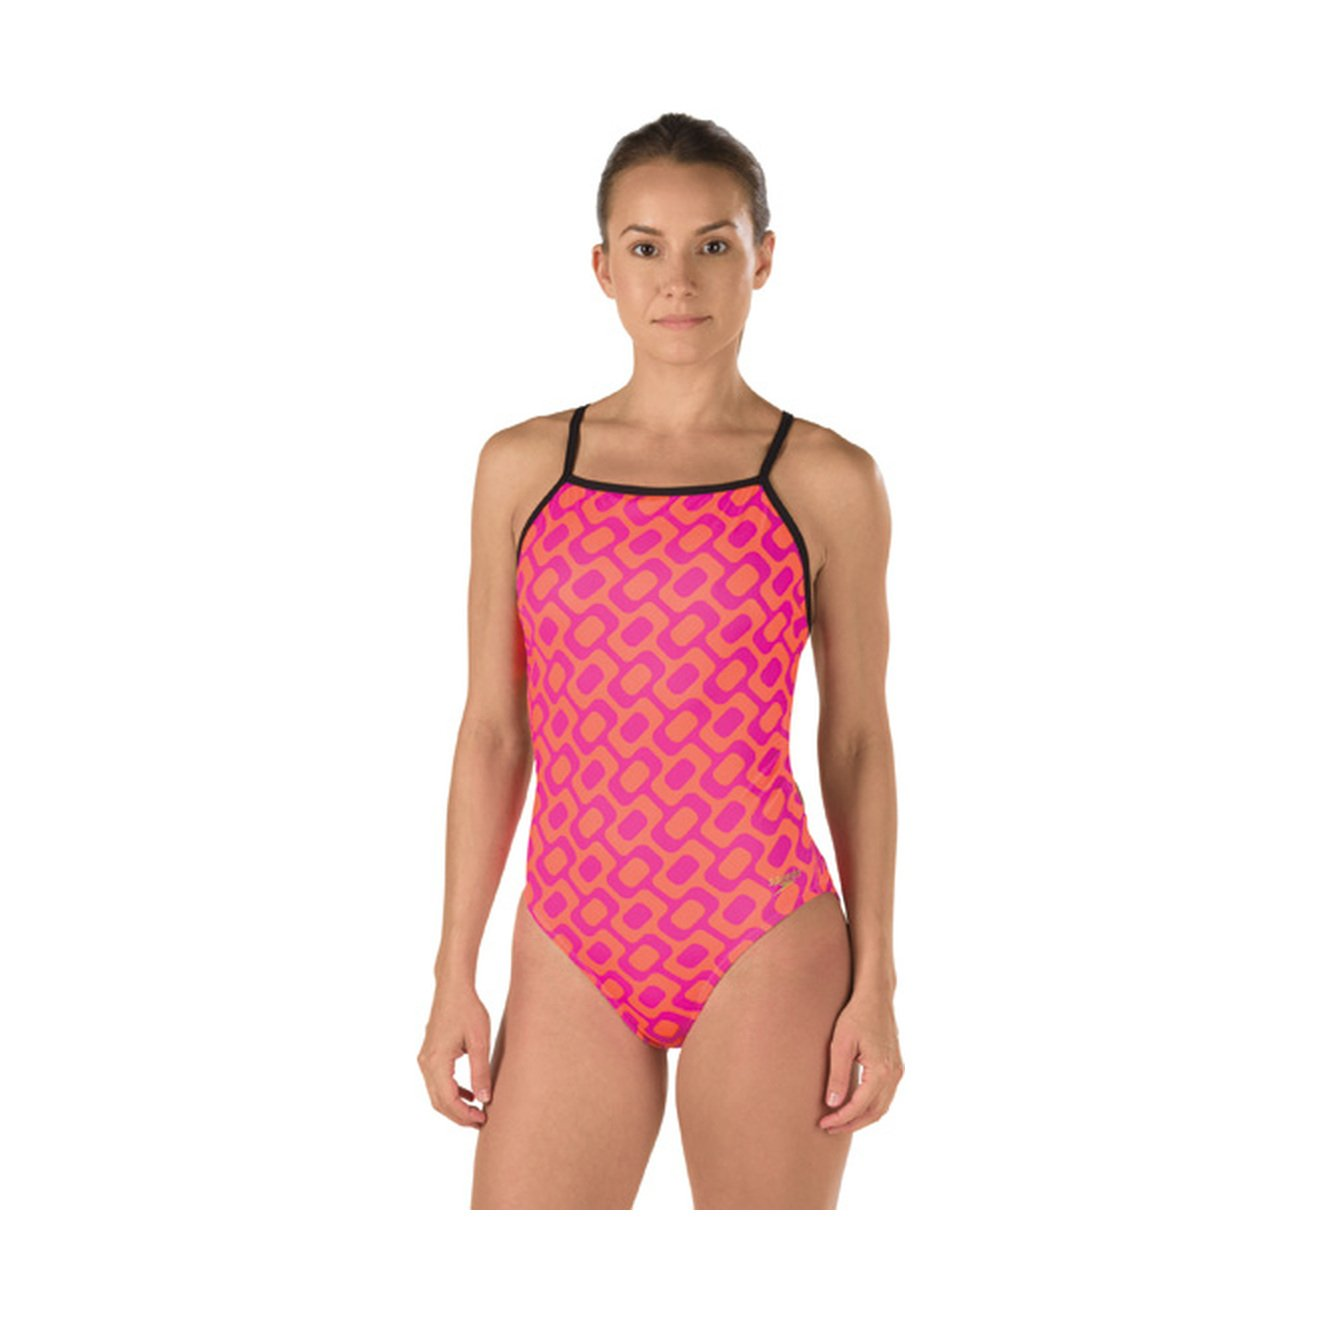 Speedo Women's Printed One Back Rio Americana One Piece Swimsuit